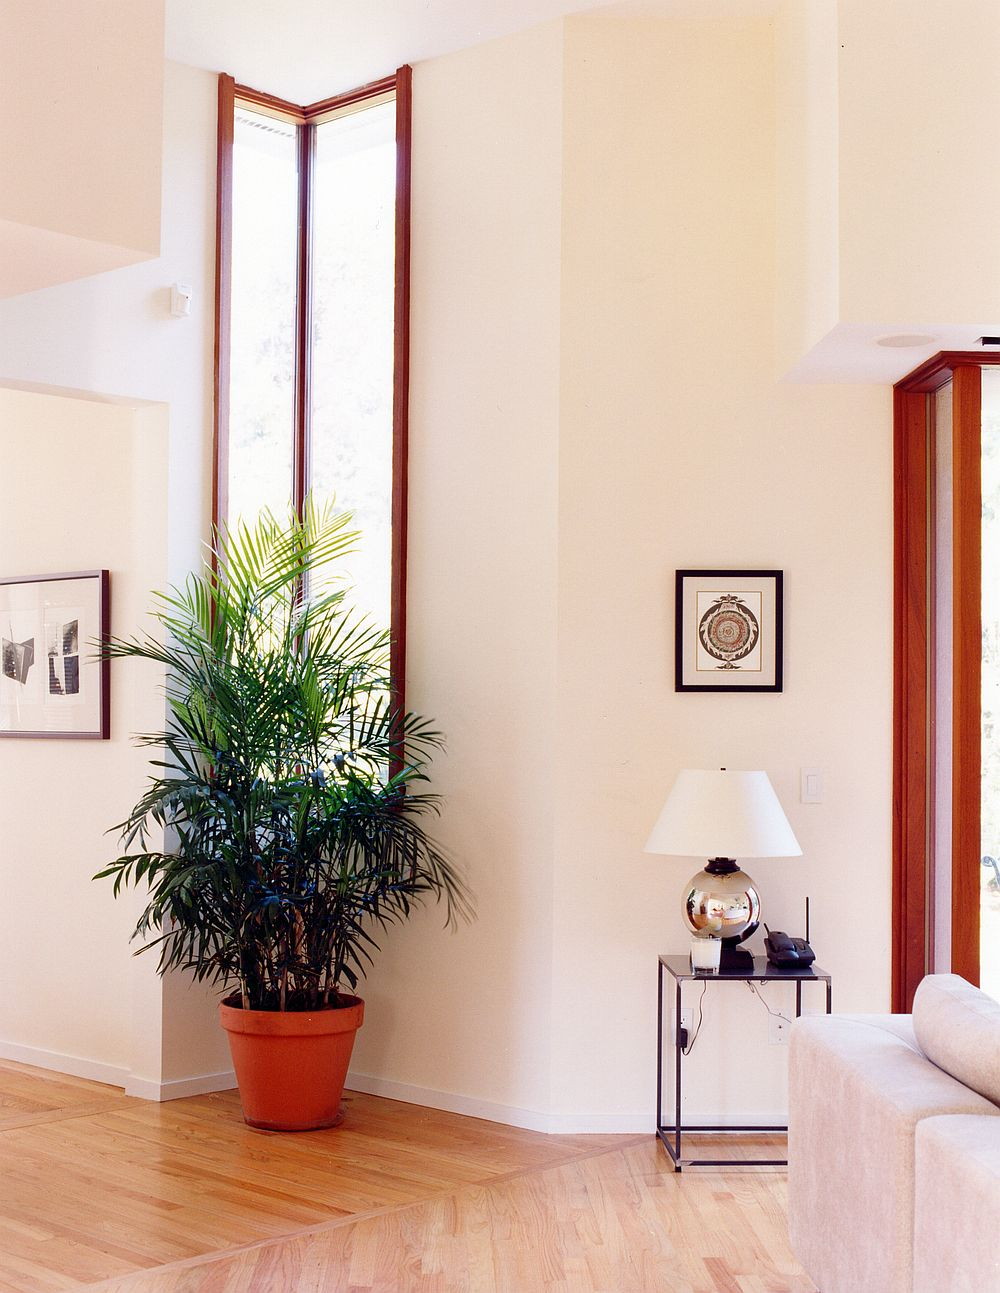 Interior-of-the-house-in-white-with-ample-natural-light-and-a-relaxing-appeal-13005